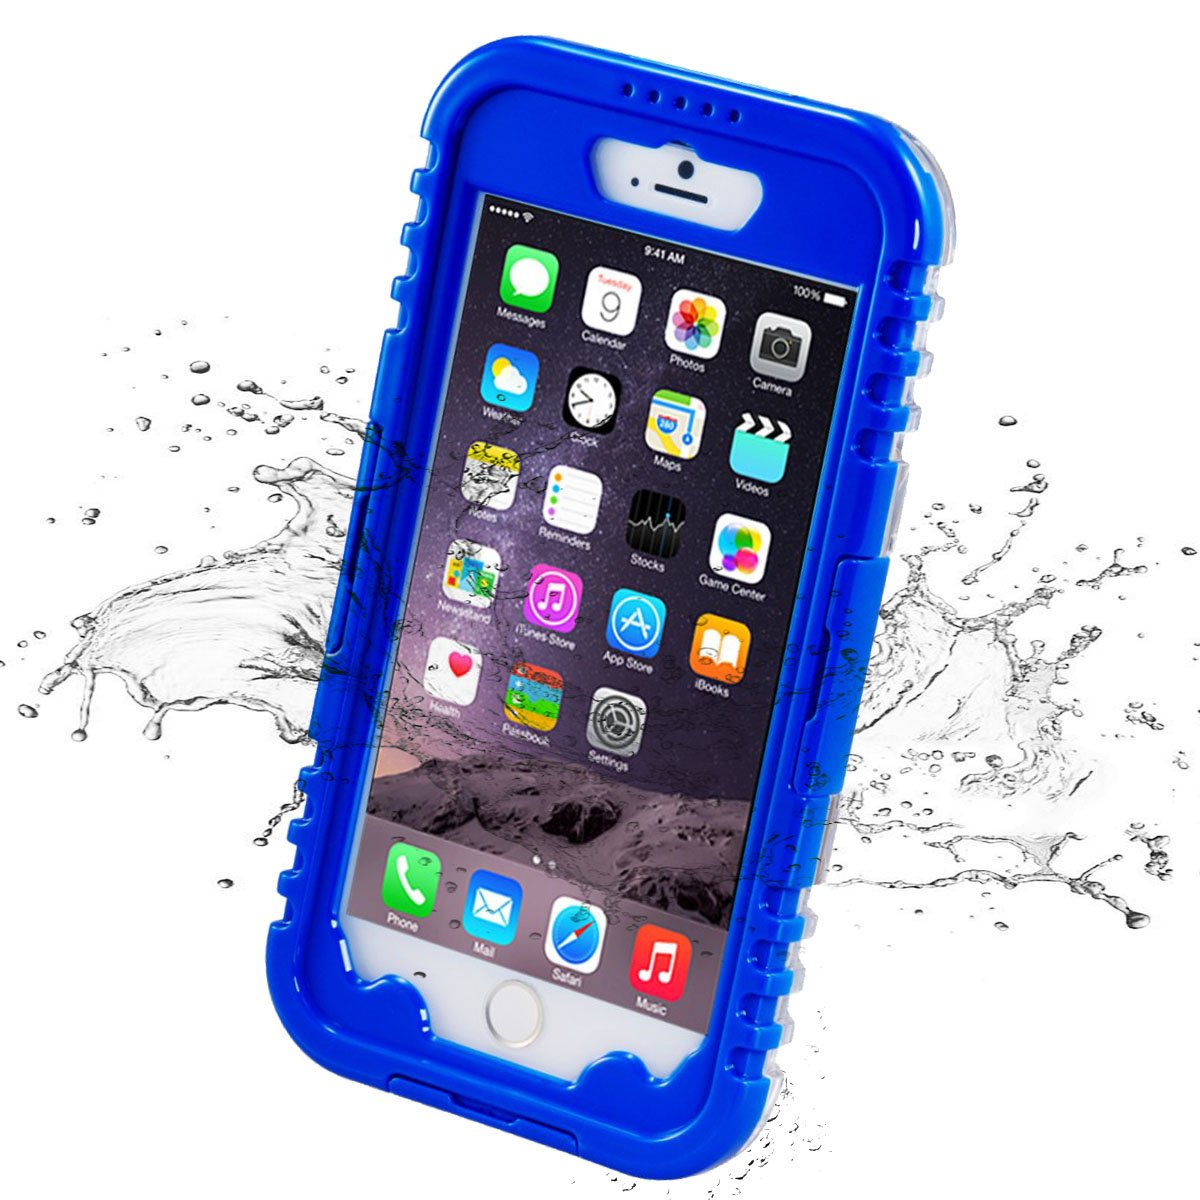 iPhone X Waterproof Case, iThrough® Underwater Case for iPhone X 5.8 Inch, Heavy Duty Shock Rain Snow Dust Proof Protective Case Cover for iPhone X with Touched Transparent Screen Protector (Black) iThrough Limited ITGH305B-CA